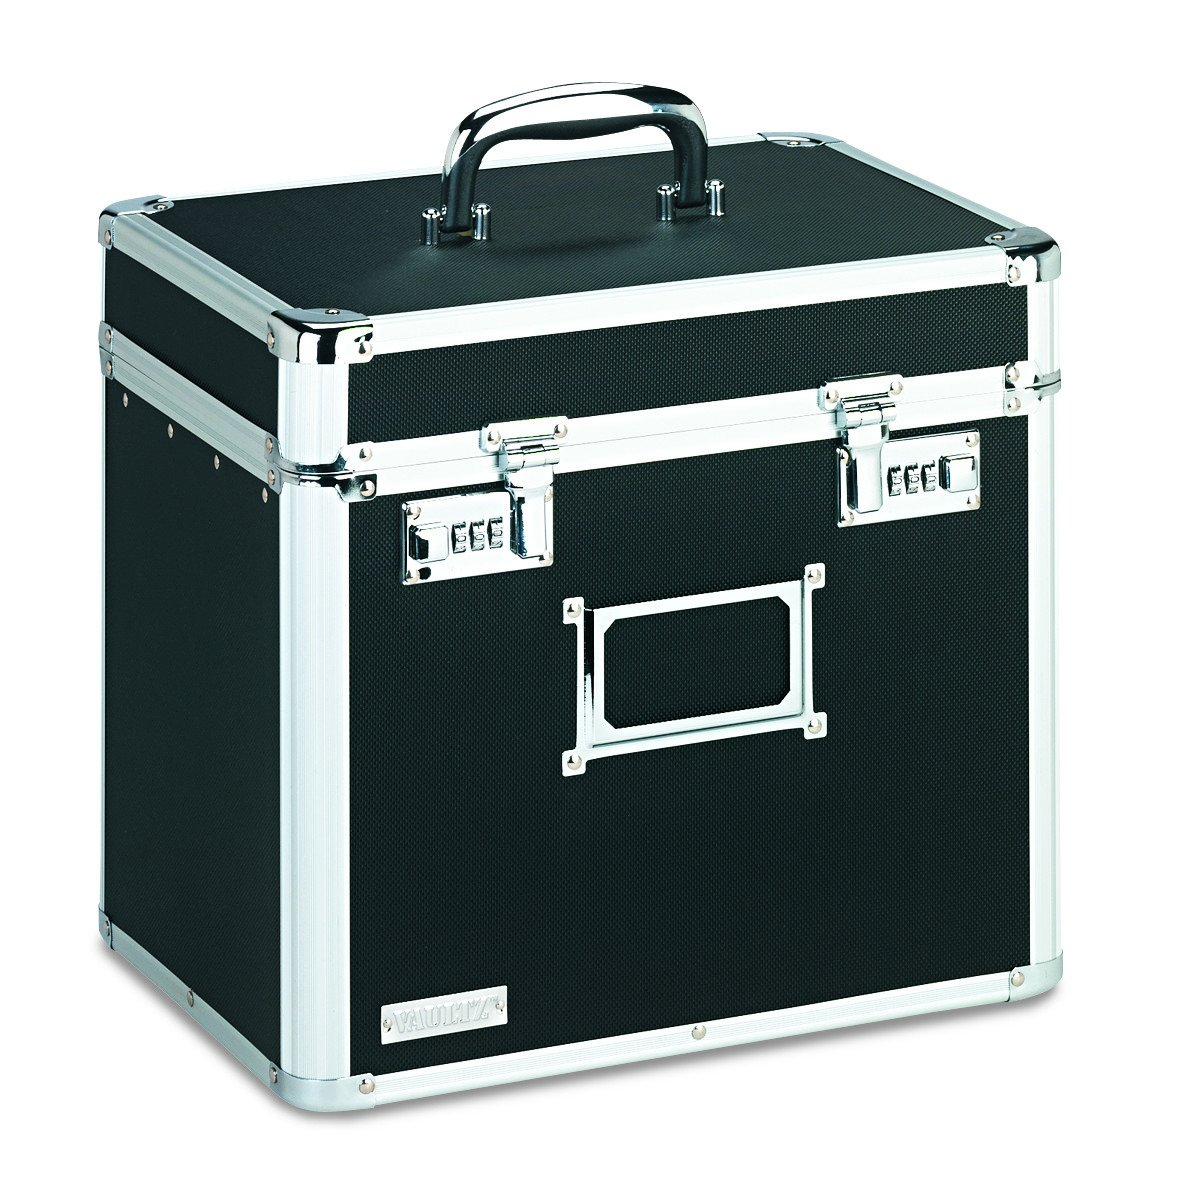 Vaultz Locking File Security Box, Letter Size, 13.5 x 10.5 Inches, Black (VZ01165)